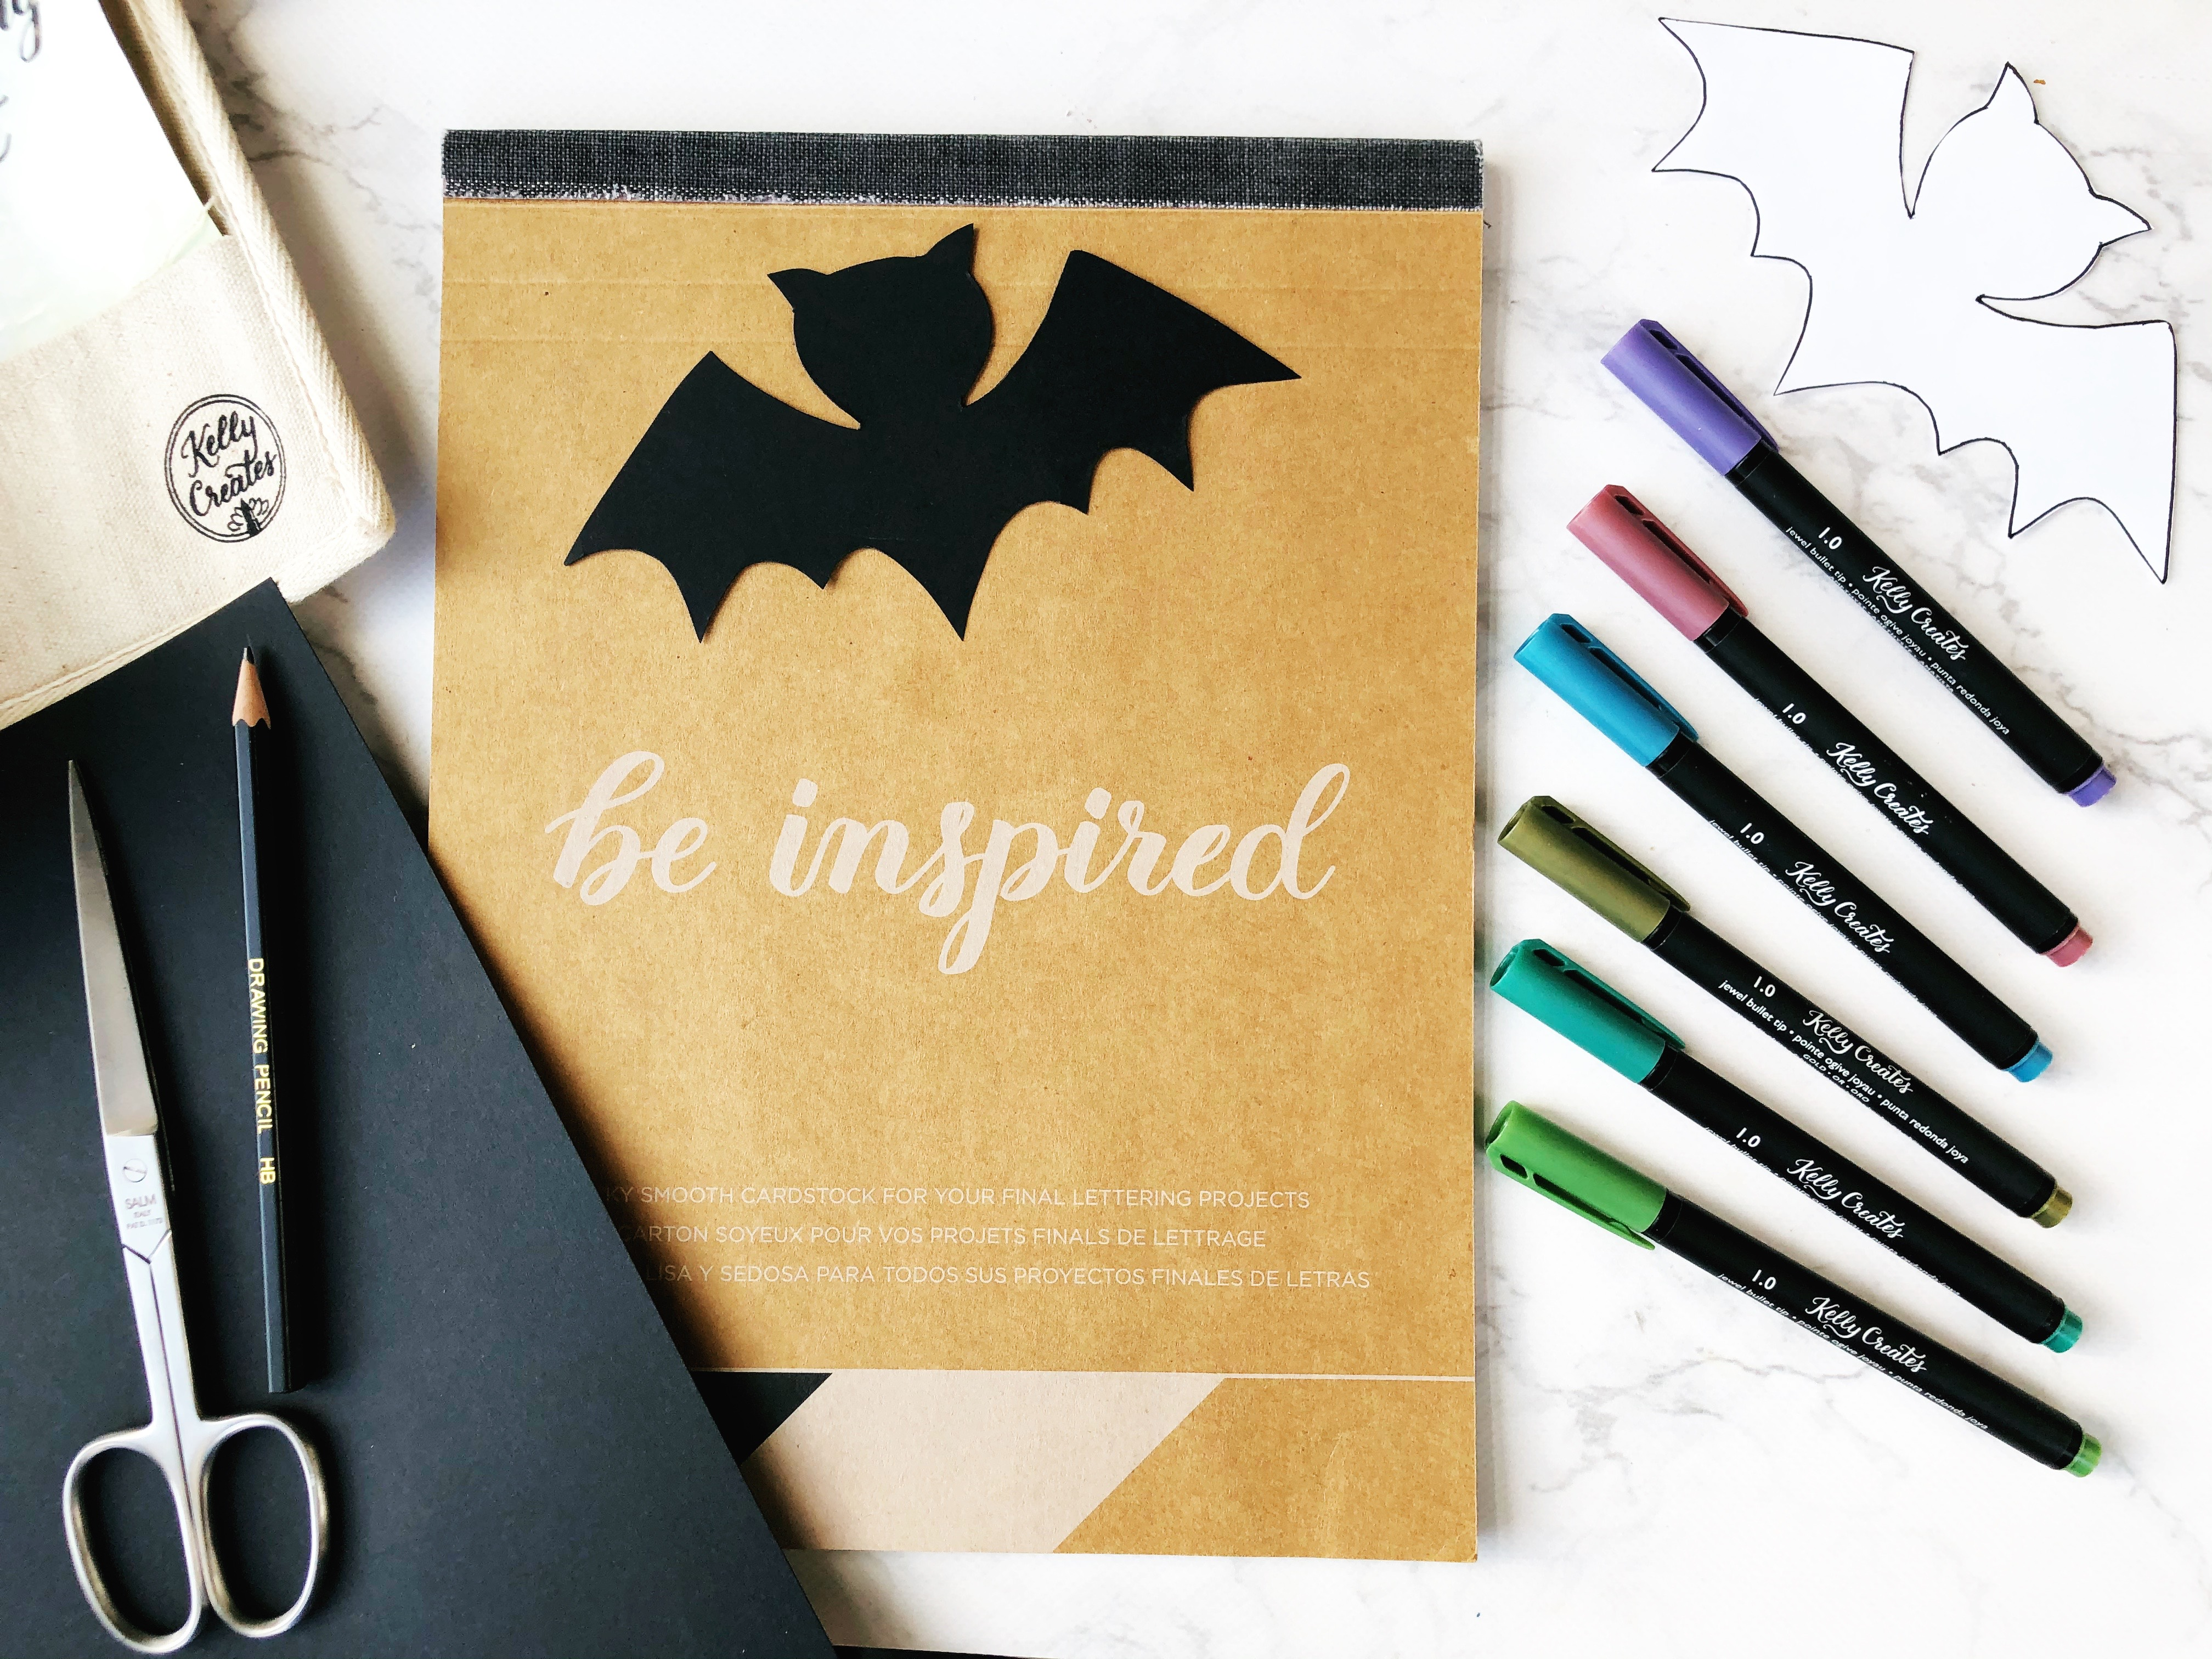 Kelly Creates Halloween project supplies. Deluxe Lettering Kit and Project Pad